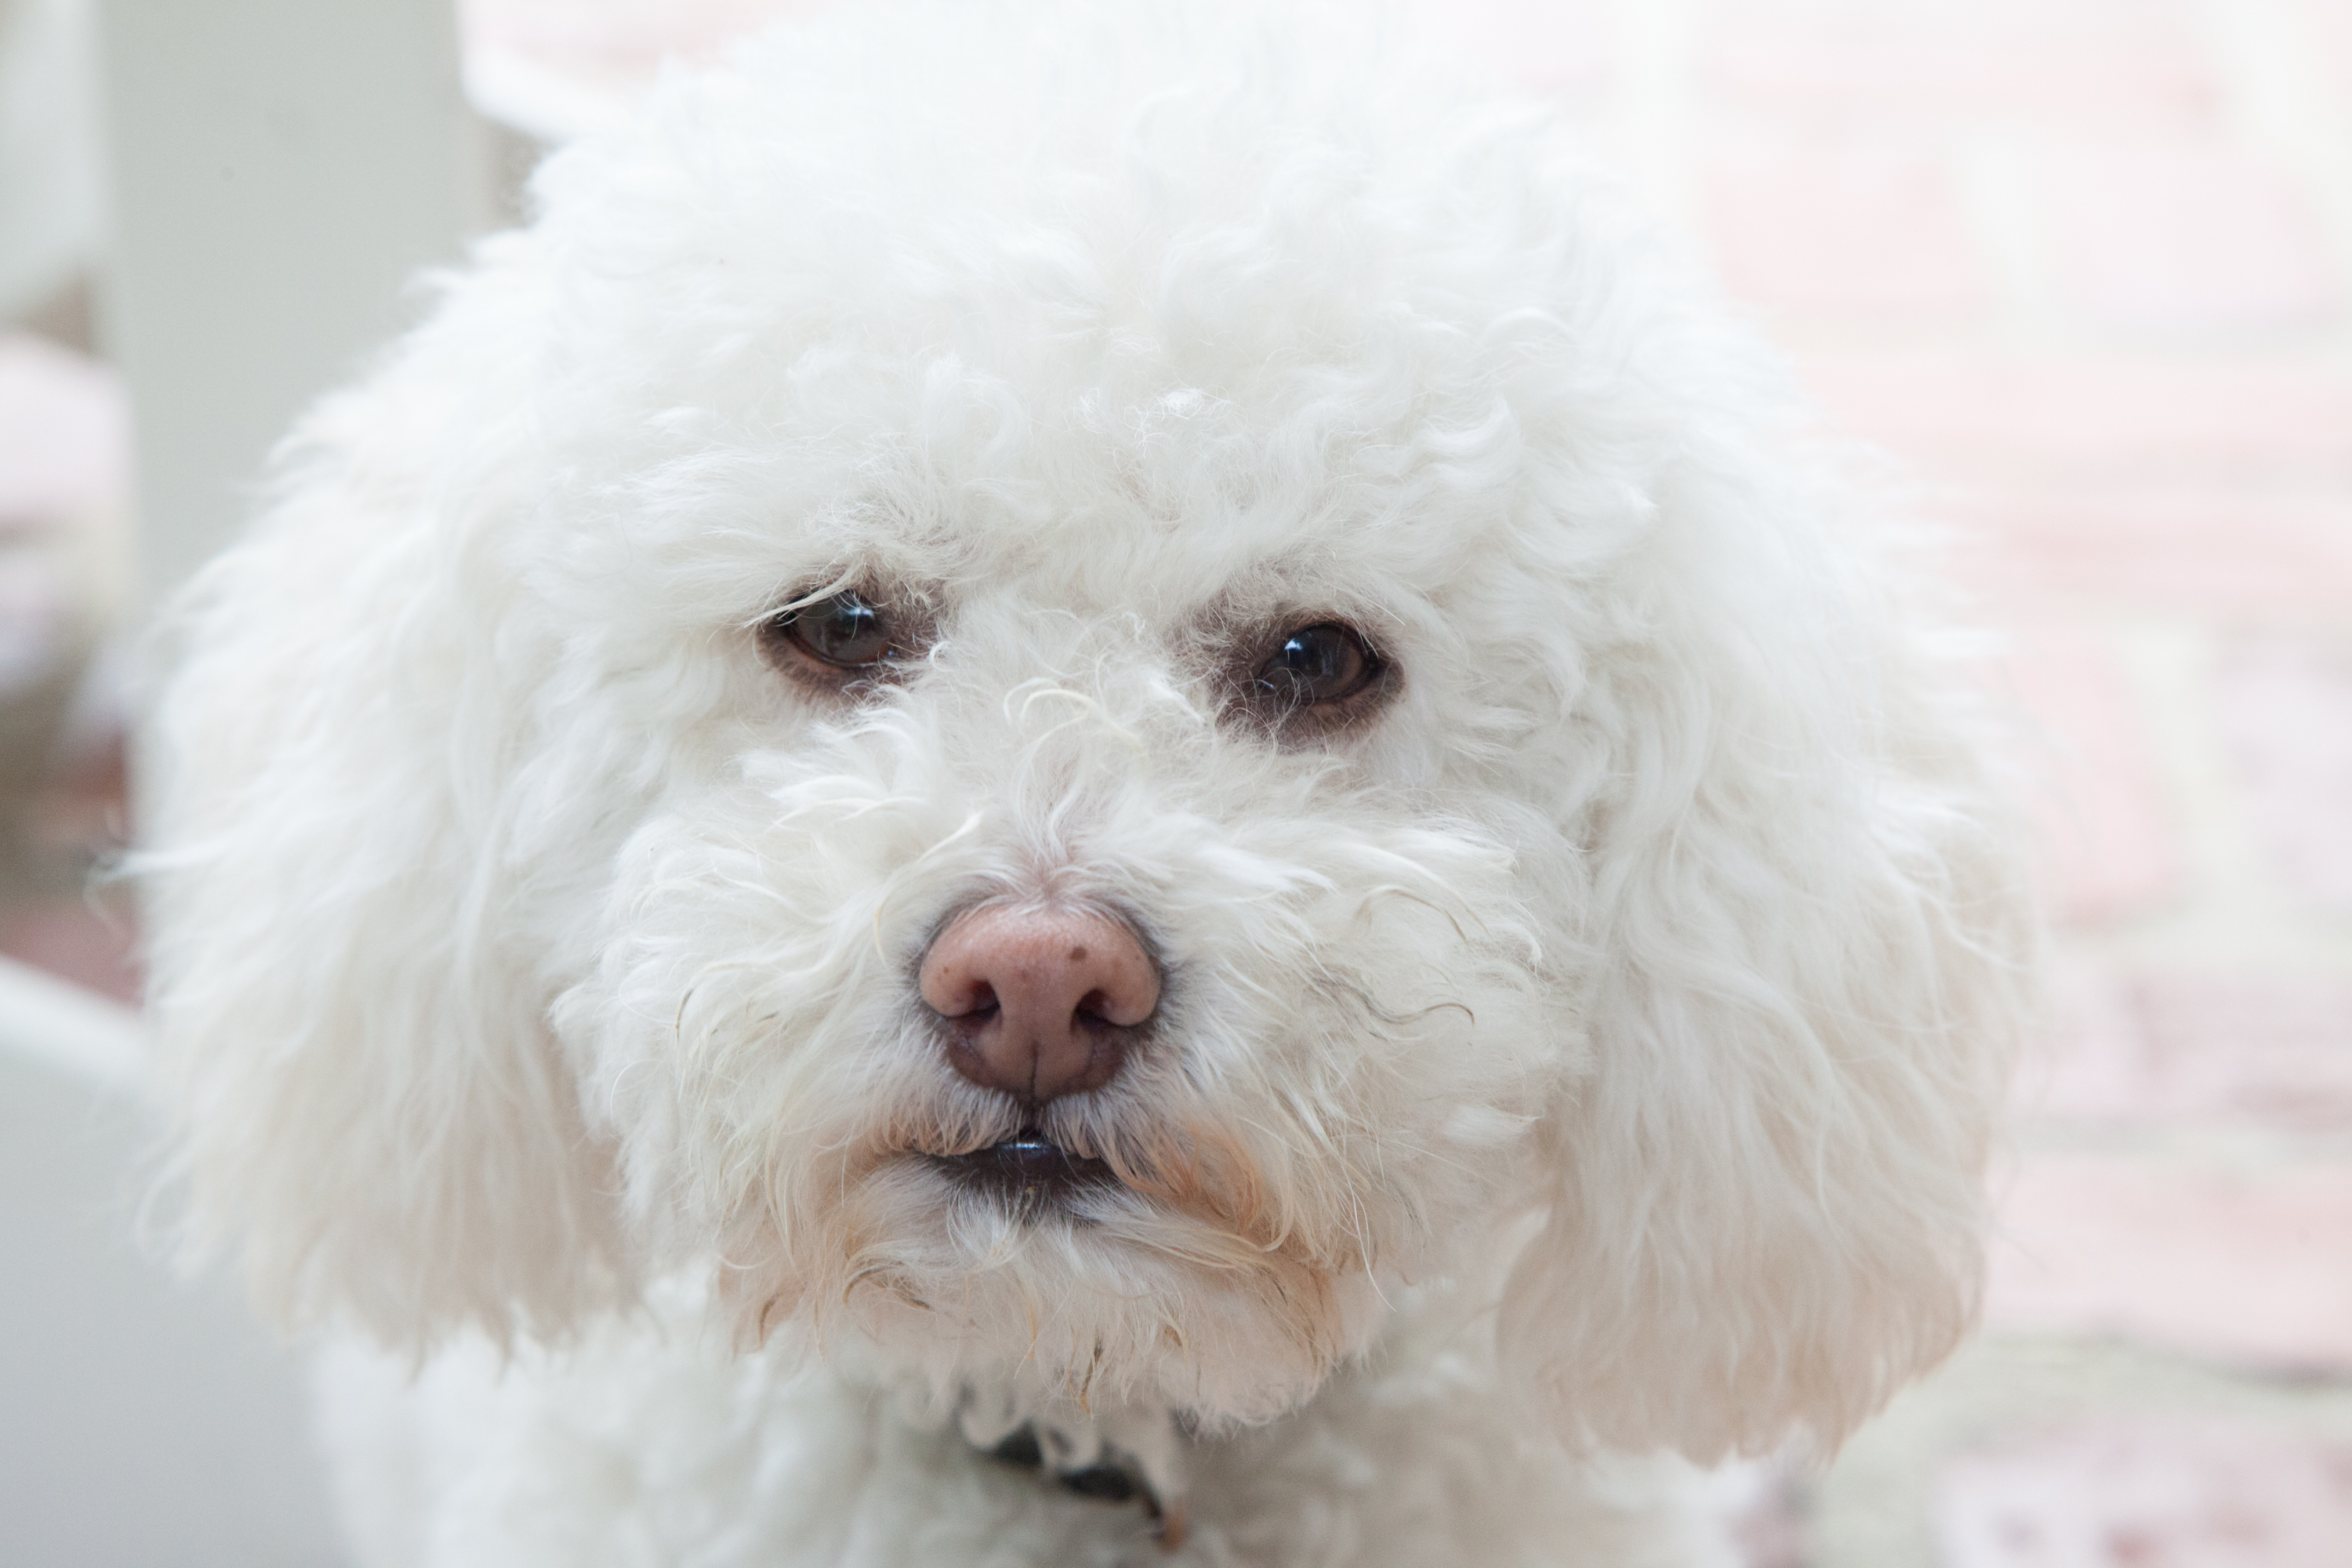 Causes Of Eye Tearing In Dogs